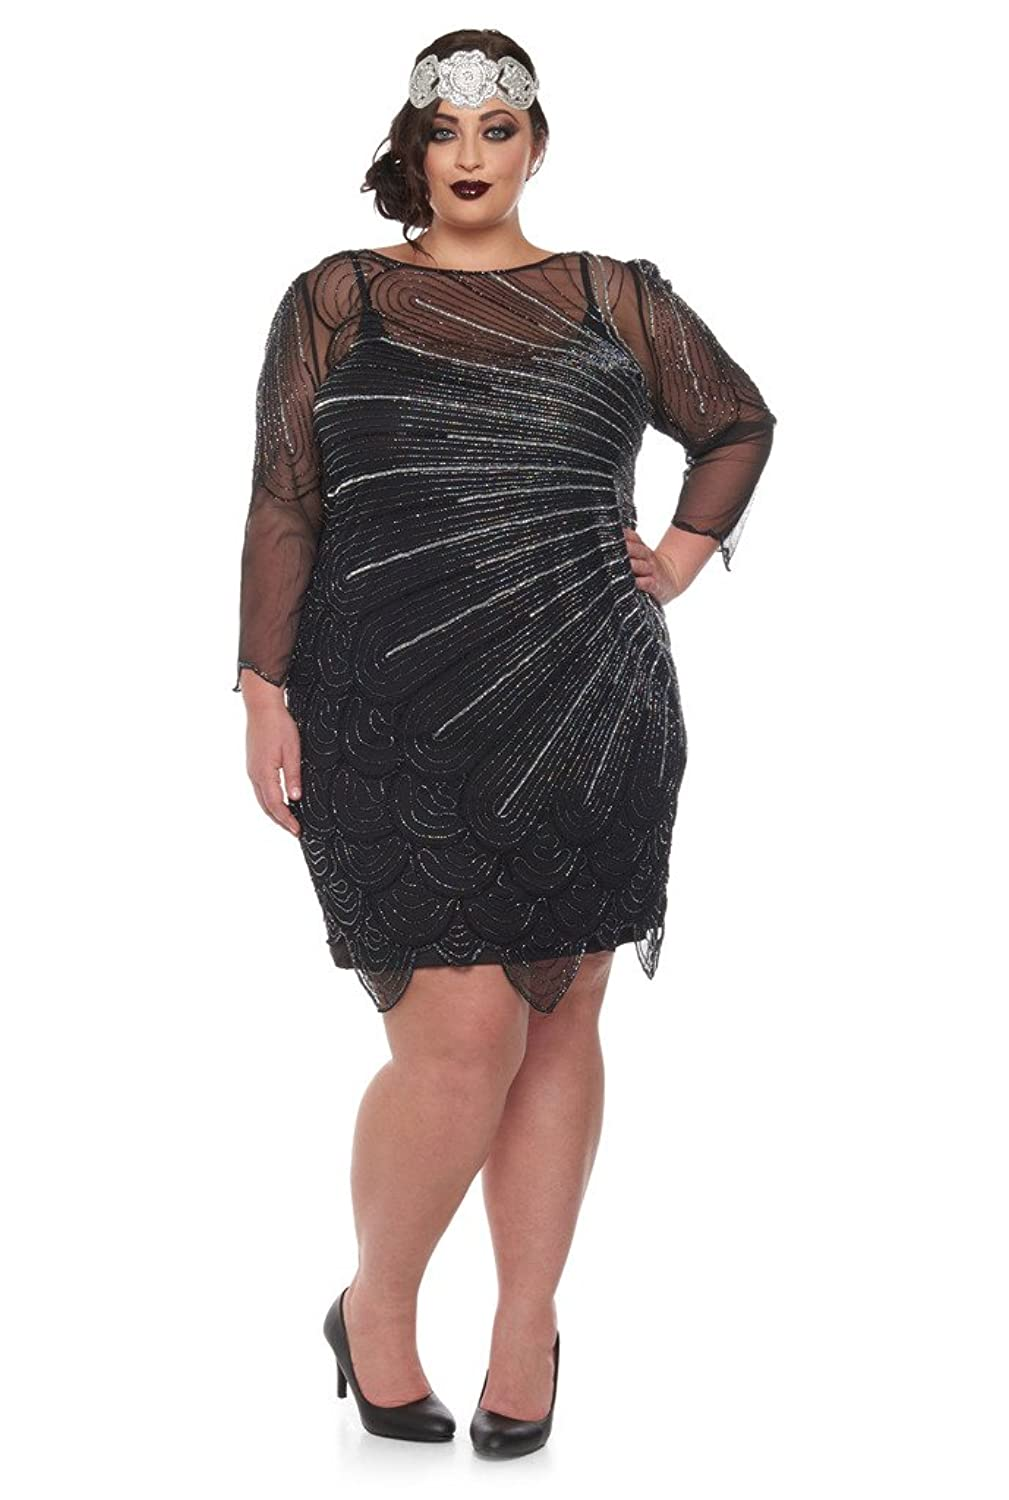 Vintage Evening Dresses and Formal Evening Gowns Catherine Vintage Inspired Flapper Dress in Black Silver $105.22 AT vintagedancer.com